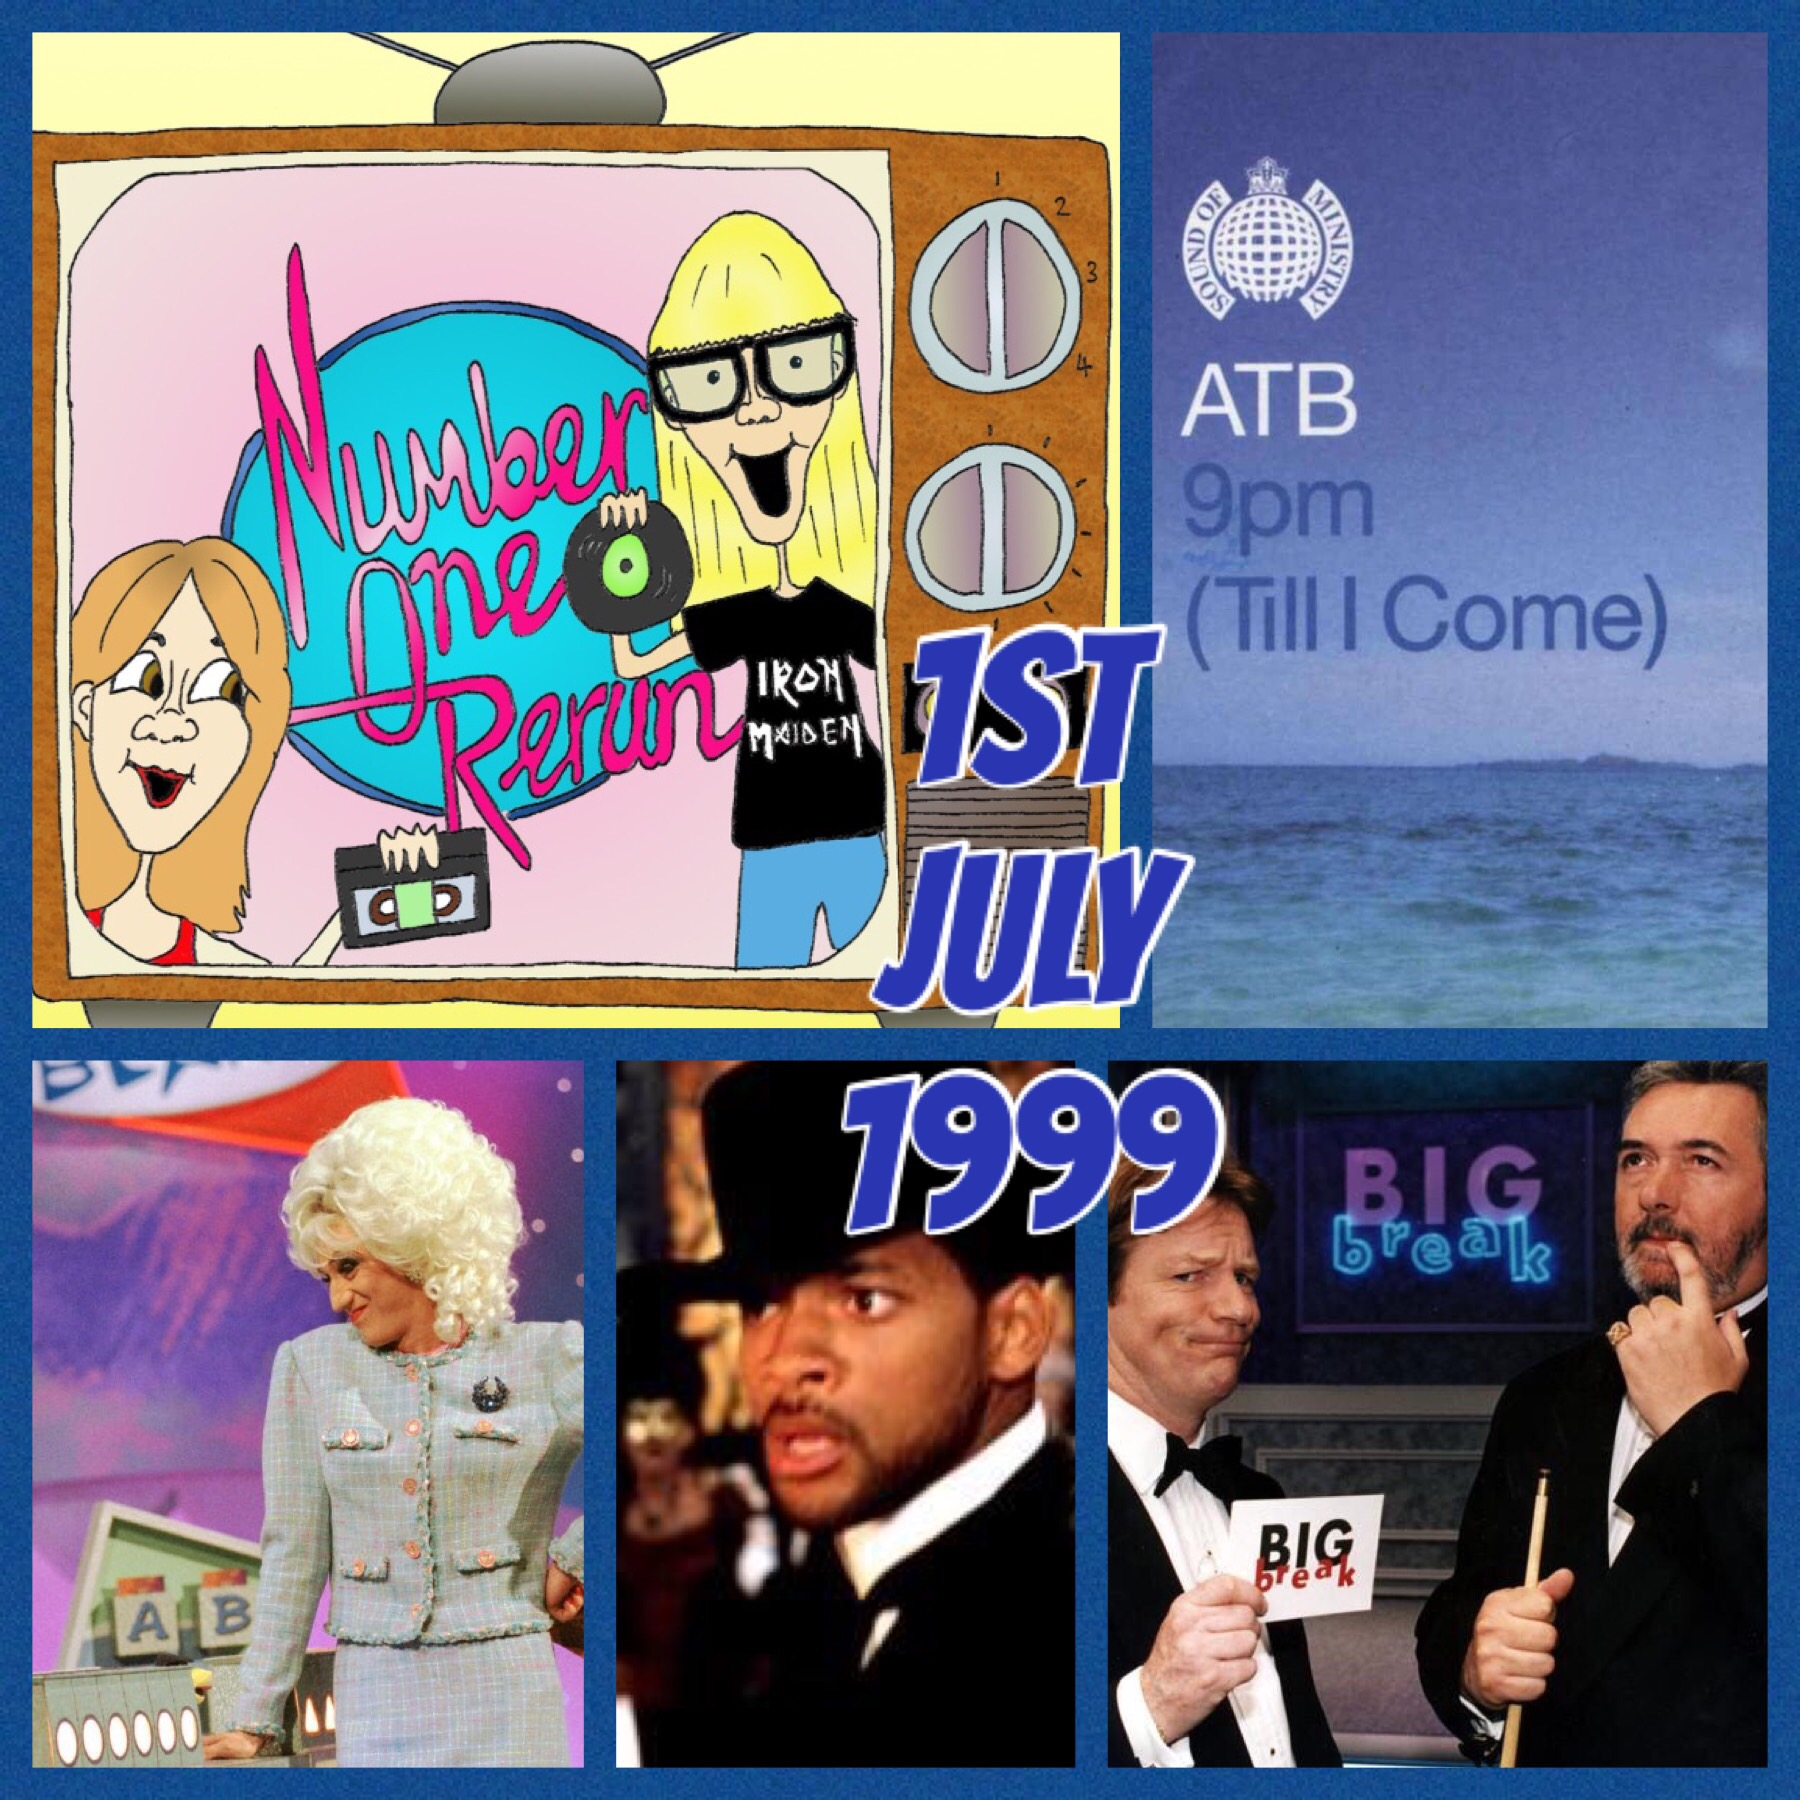 1st July 1999 - Super Match Game & Will Smith